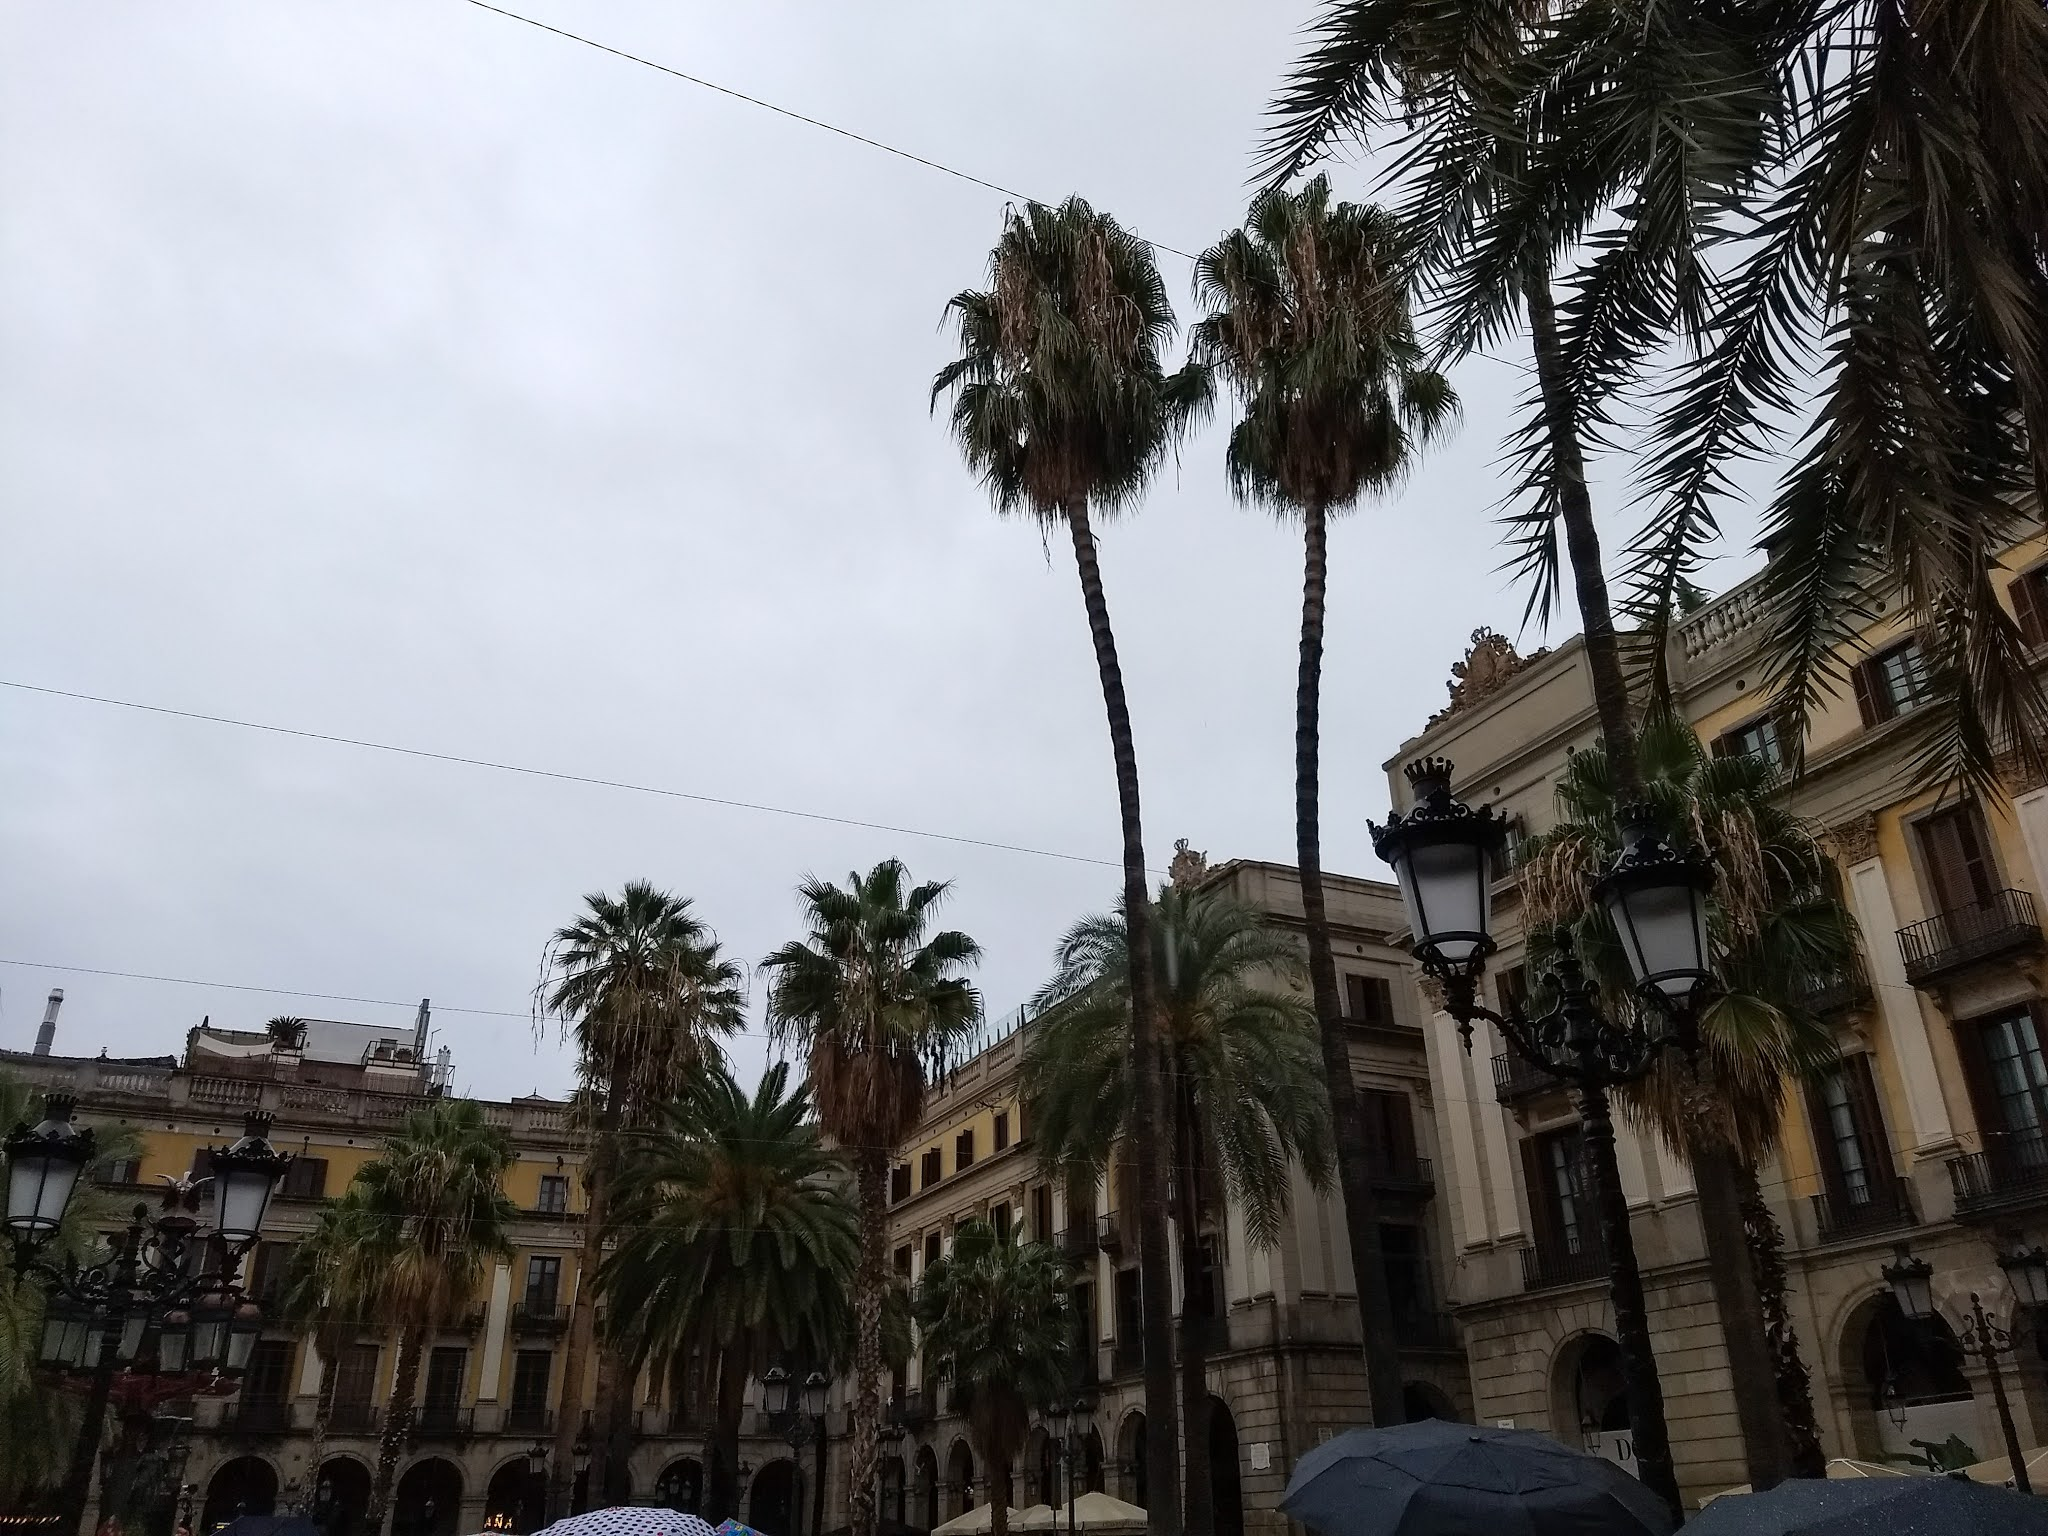 Palm trees and buildings on the Plaça Reial square in the Barri Gòtic of Barcelona, Catalonia, Spain.